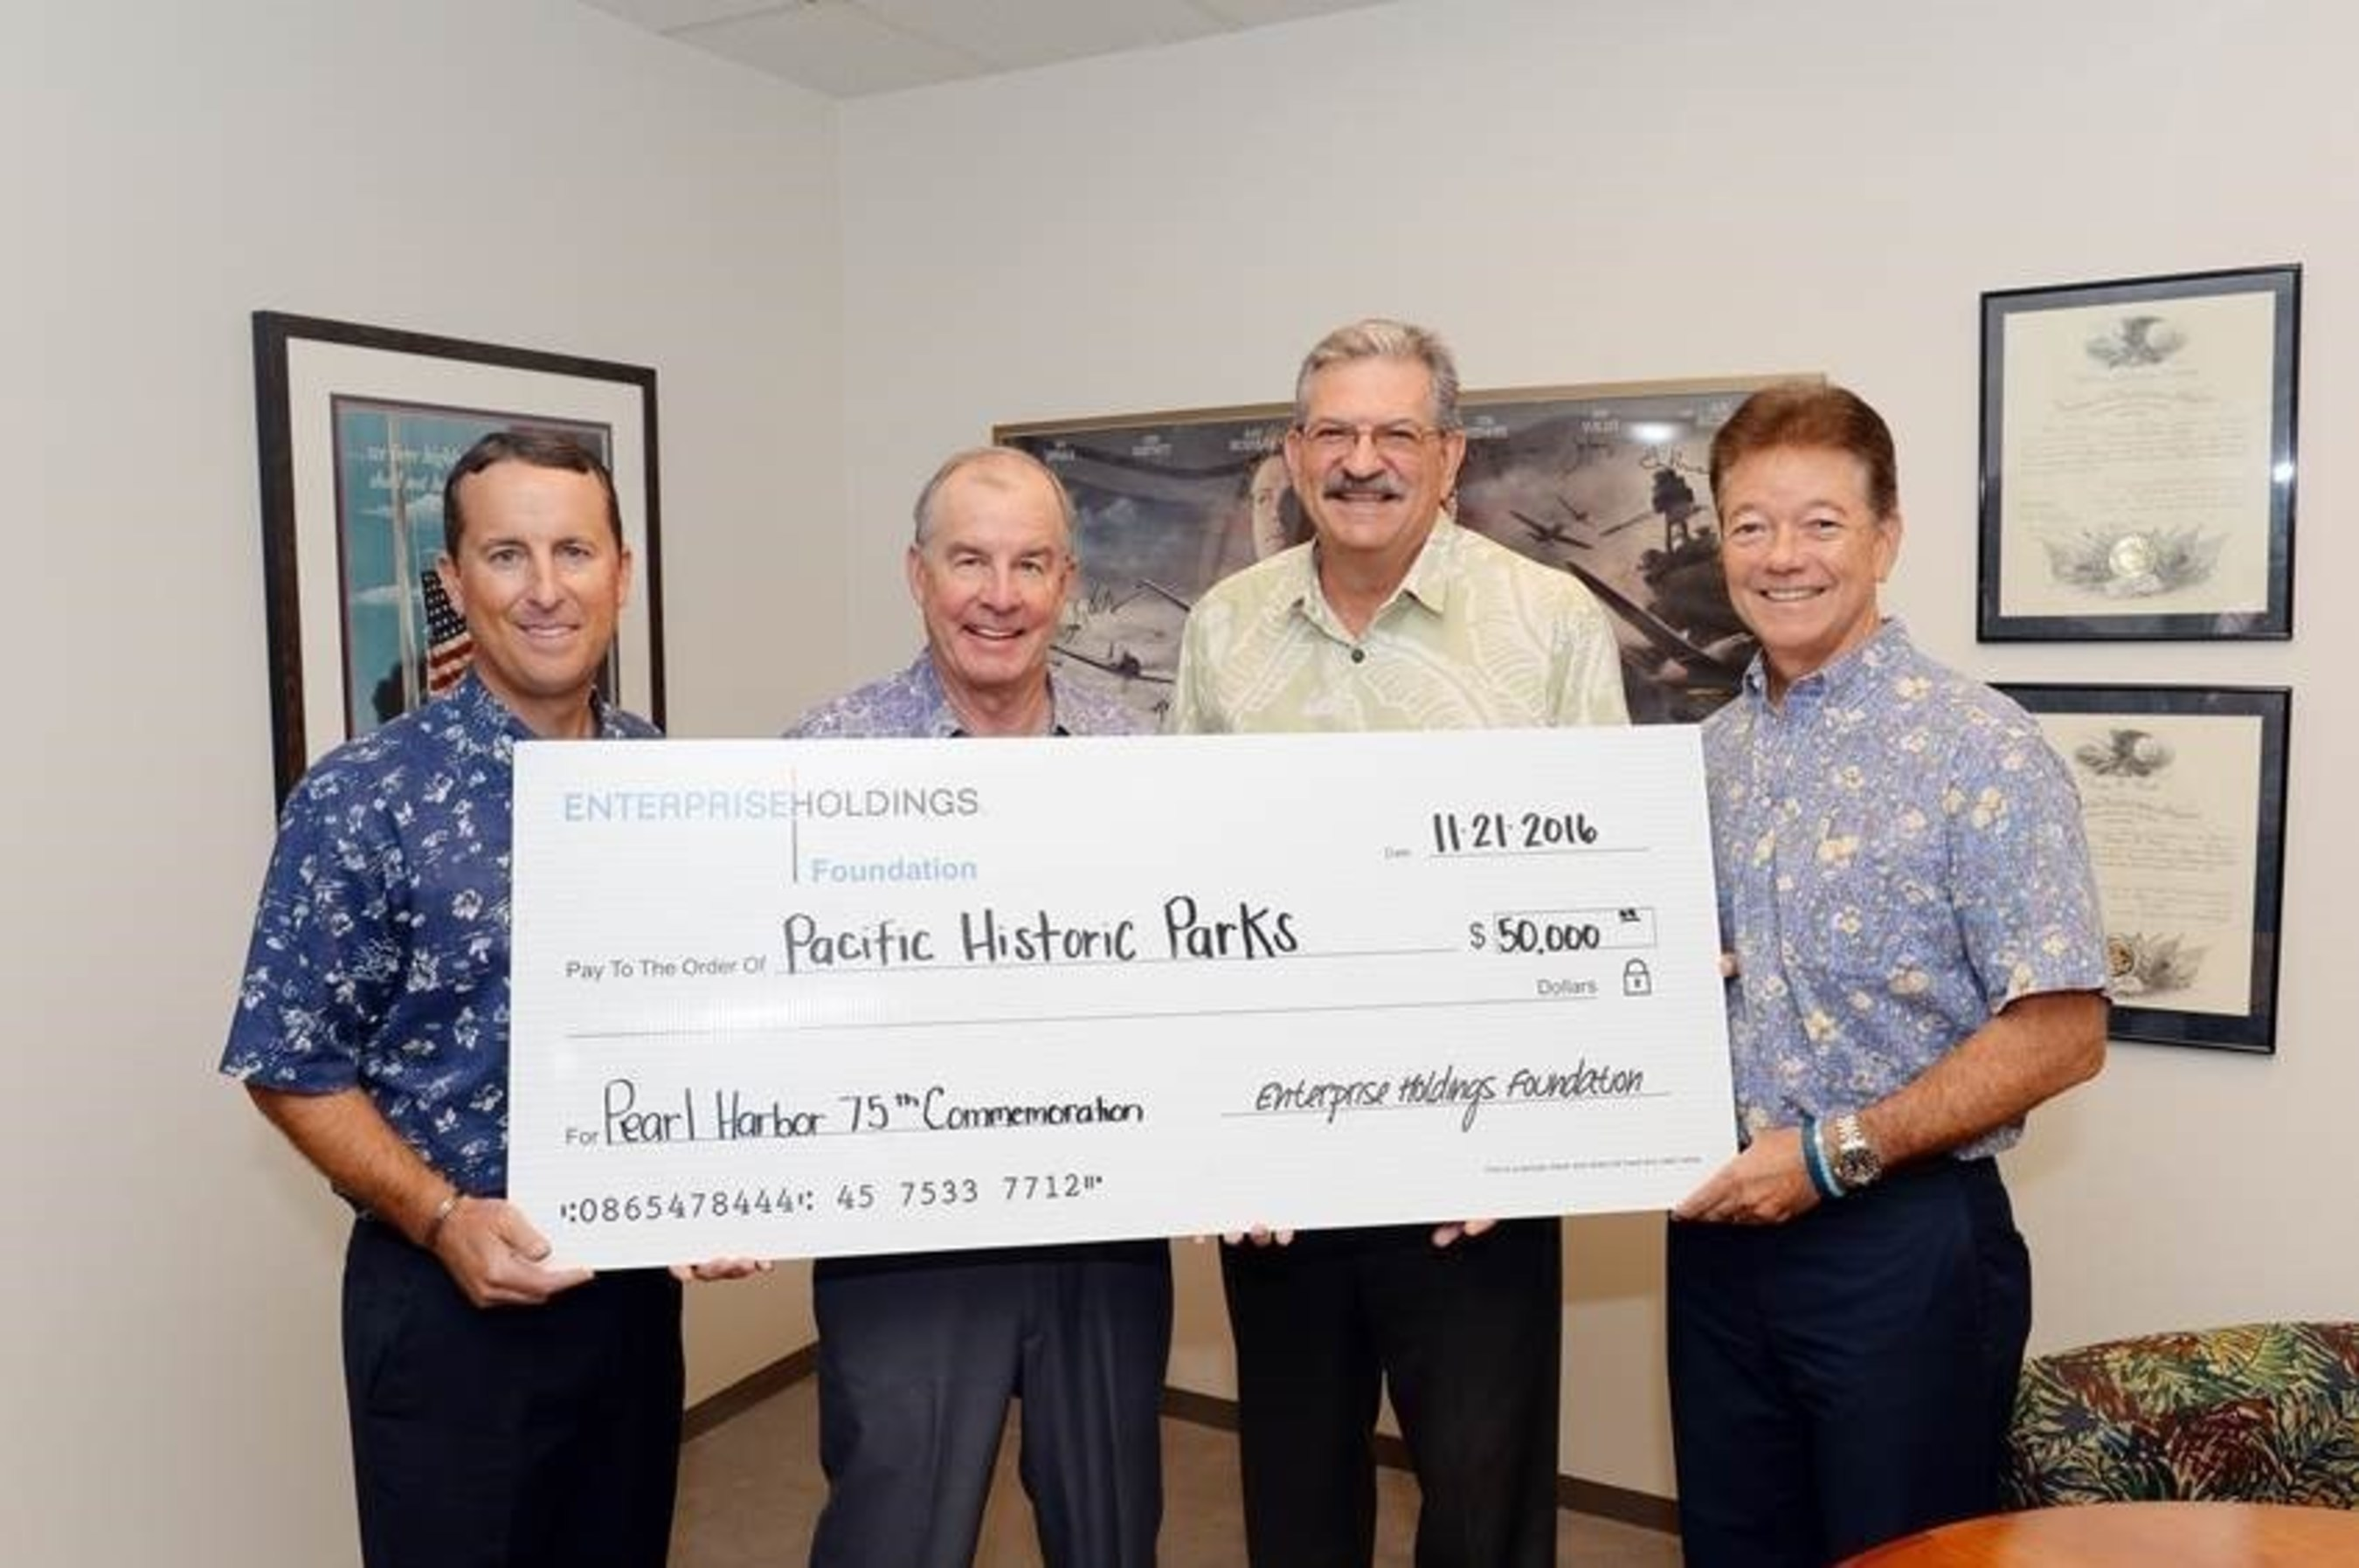 """From left to right: Vice President for Enterprise in Hawaii, Chris Sbarbaro; 75th Commemoration Committee Chair Admiral Thomas Fargo; 75th Commemoration Committee Member Tony Vericella; and Enterprise Area Sales Manager John Foy."""" photo credited to Lawrence Tabudlo, Honolulu Star-Advertiser."""